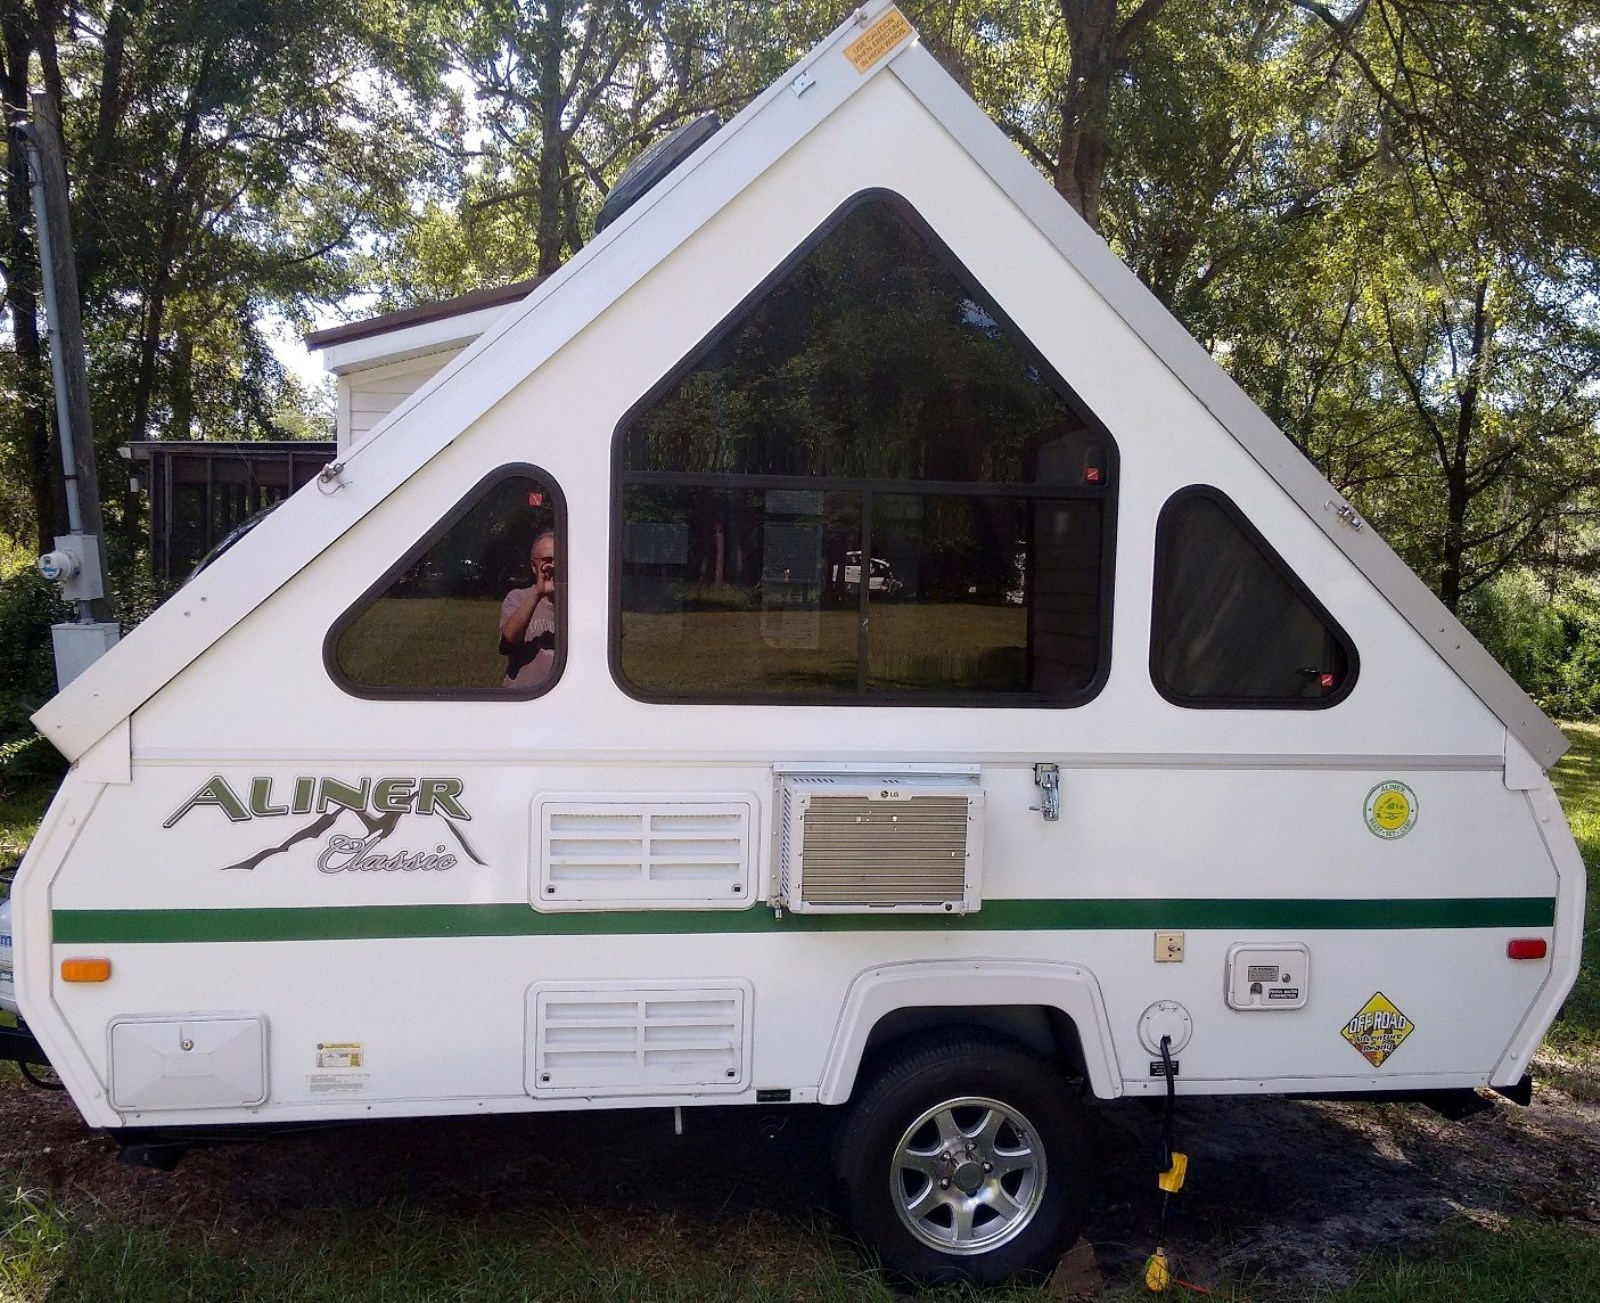 Used Camper Trailers For Sale >> Aliner Classic Pop Up Camper | Used RVs for sale